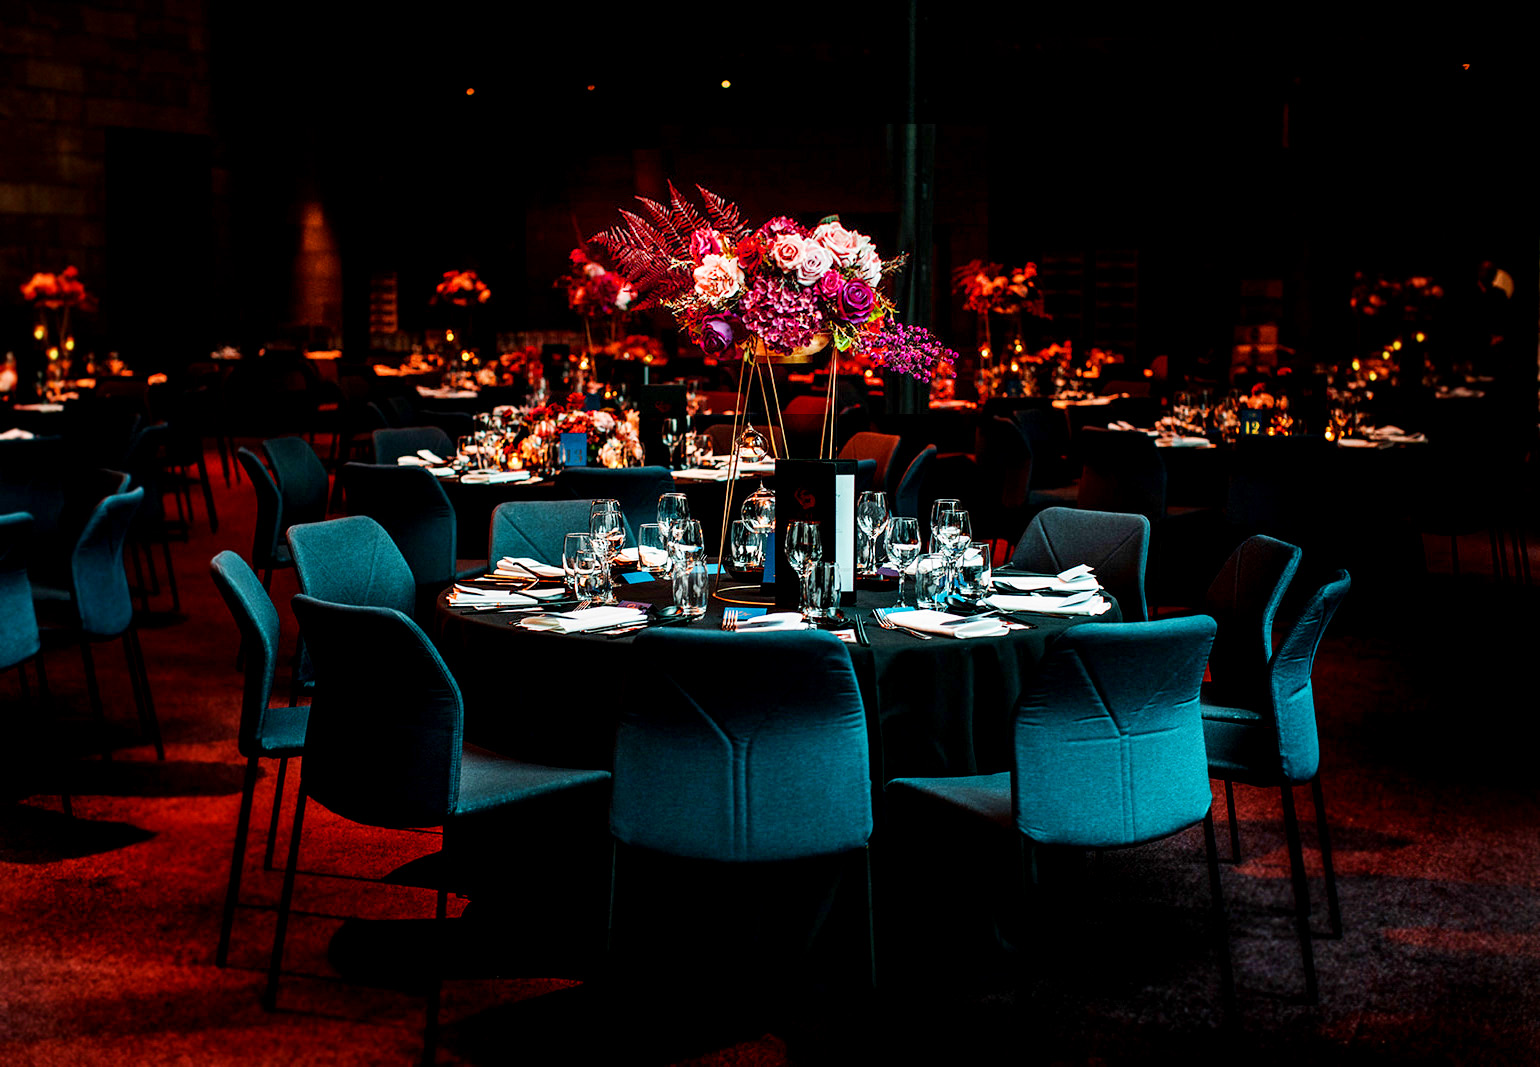 Table settings from D and H's wedding, hosted at NGV by JCAU Events